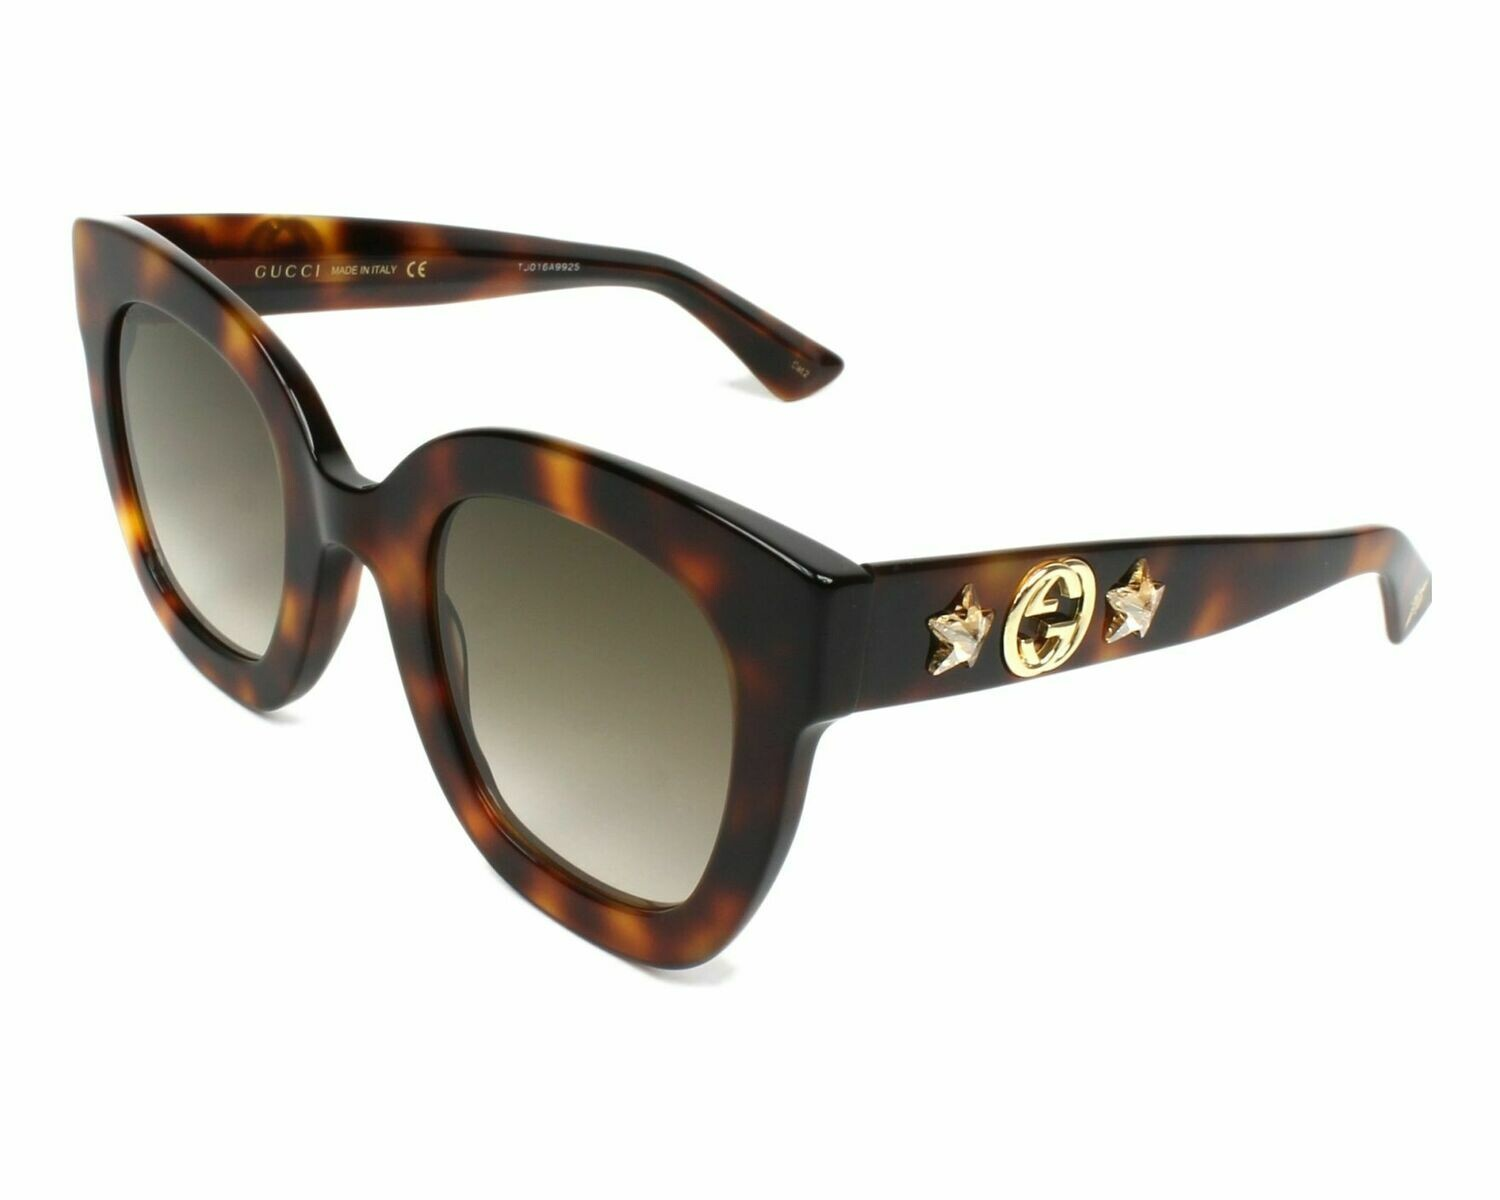 Gucci Sunglass Woman Acetate In Havana Brown With Brown Lenses